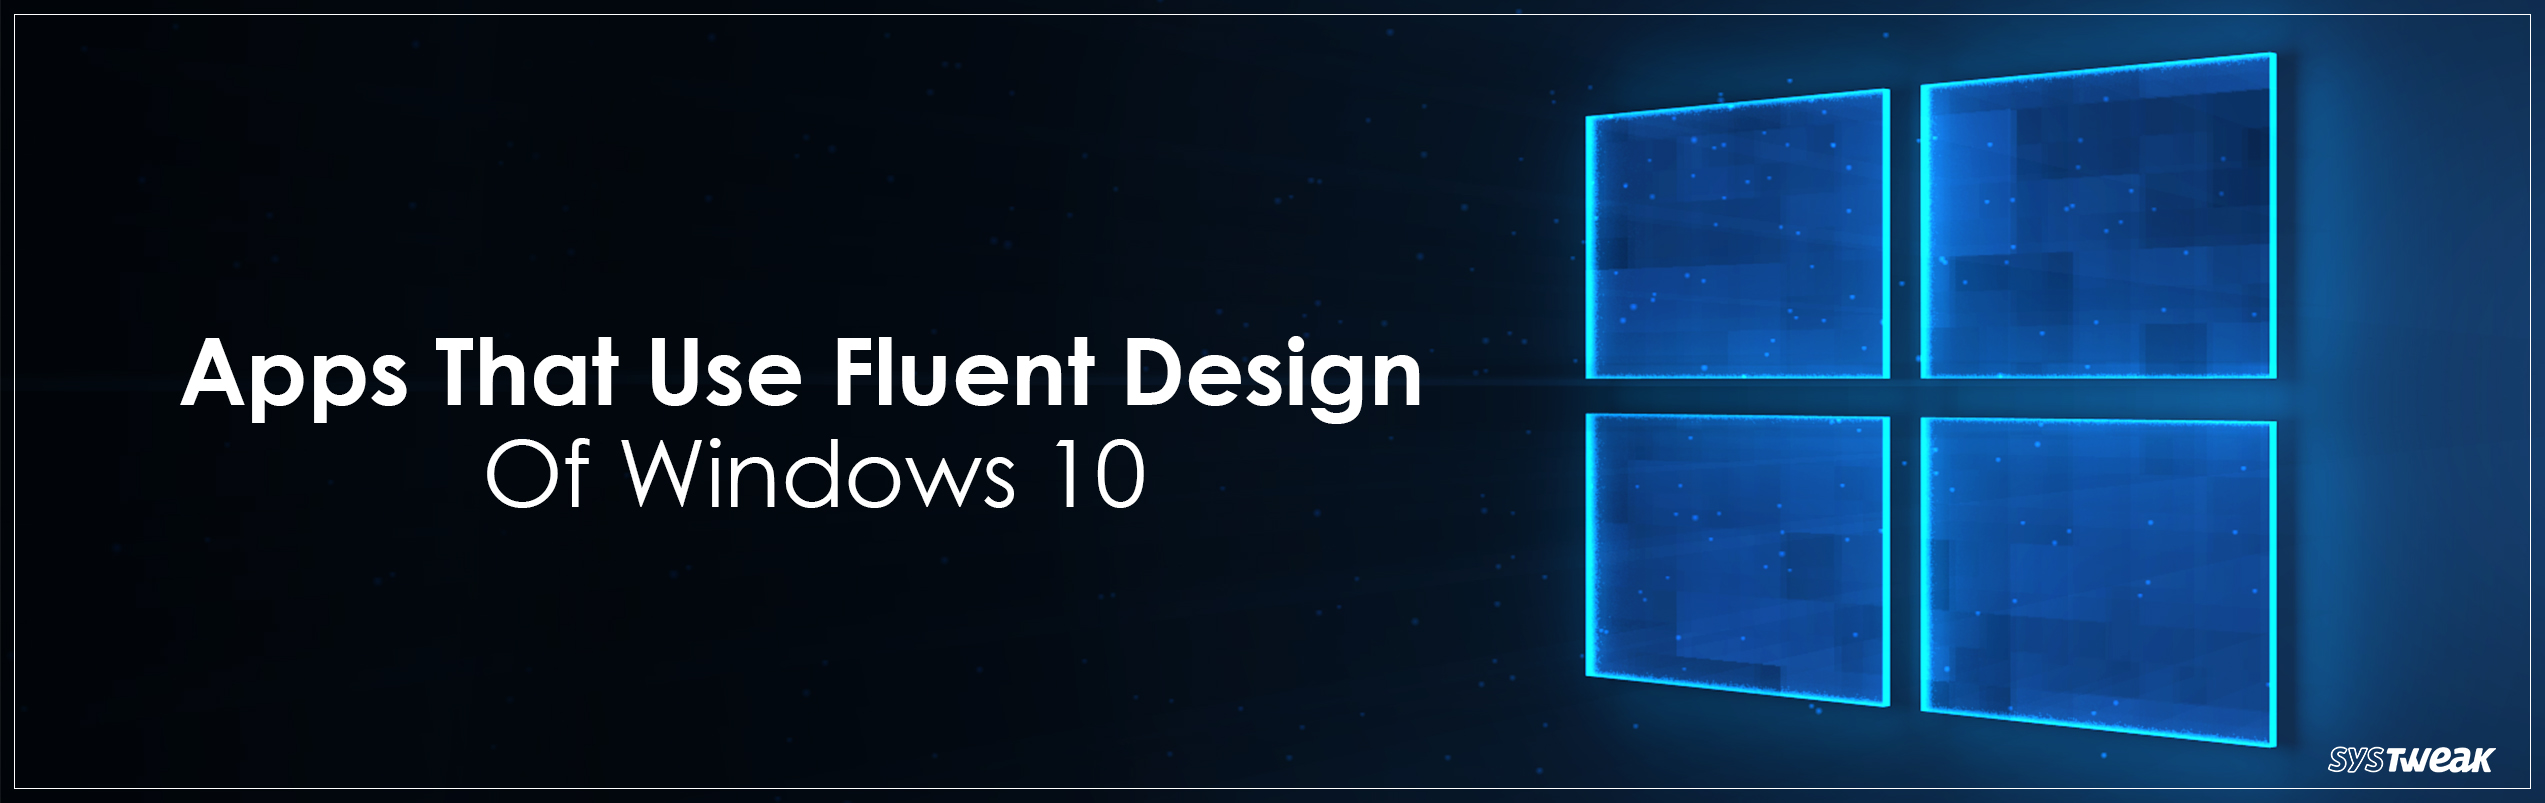 Best Apps That Use Fluent Design System On Windows 10